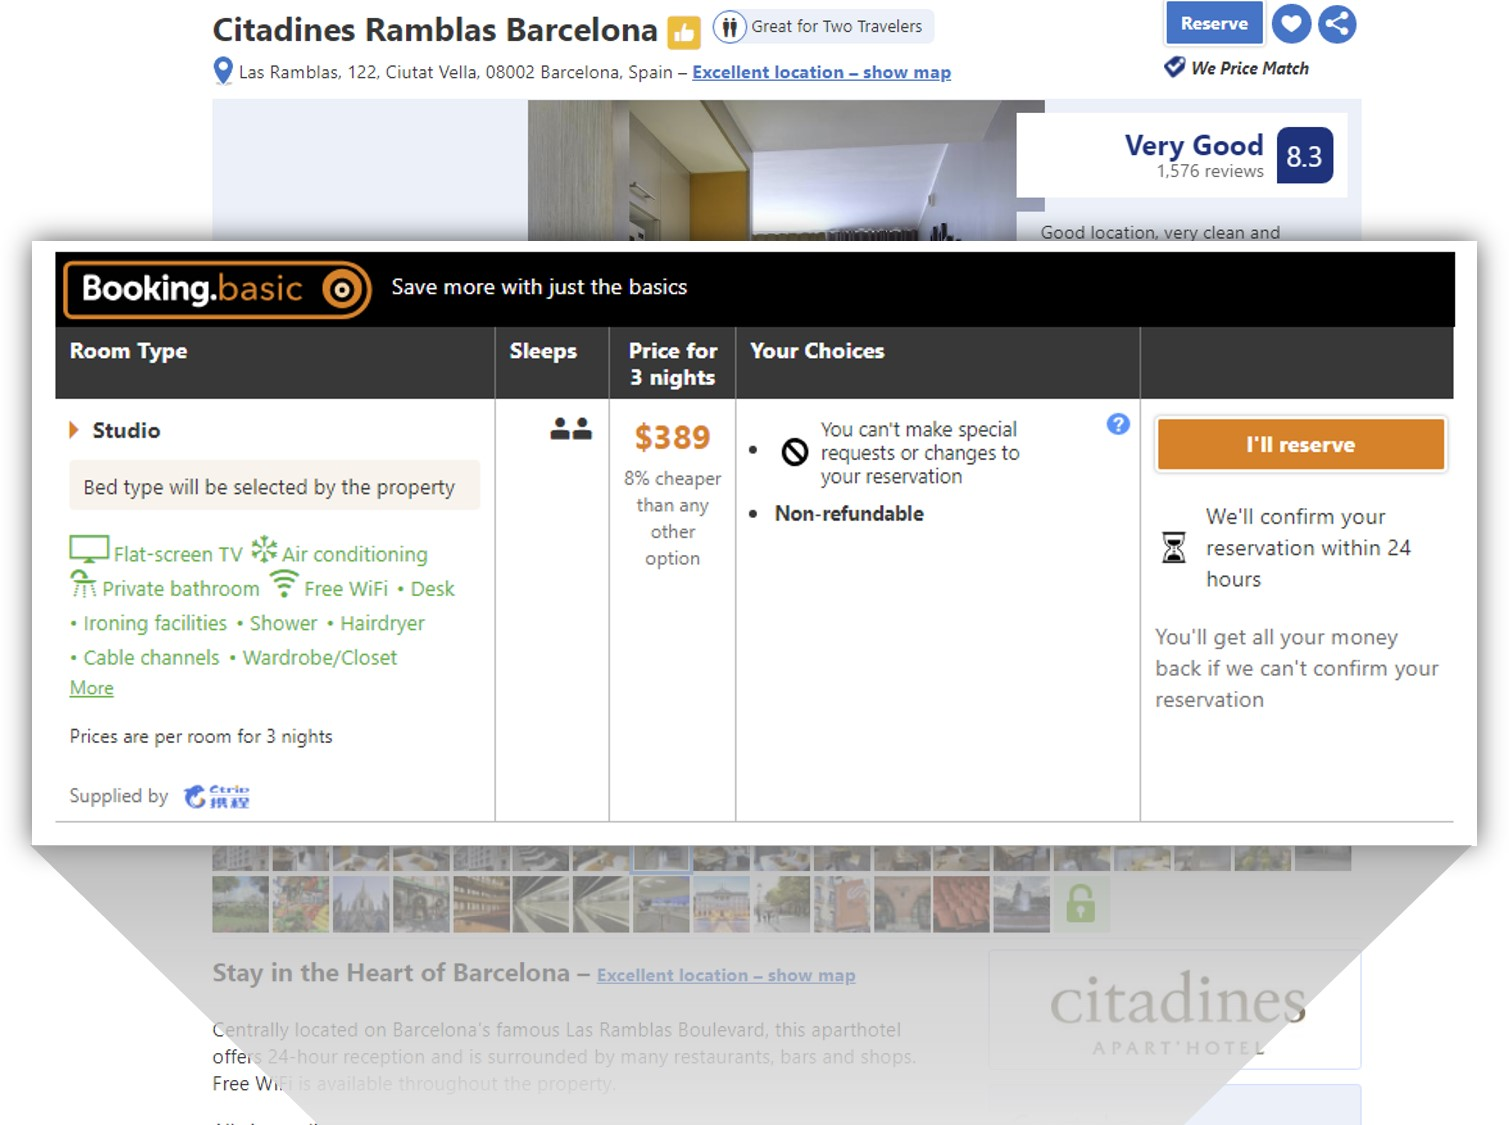 citadines booking.basic